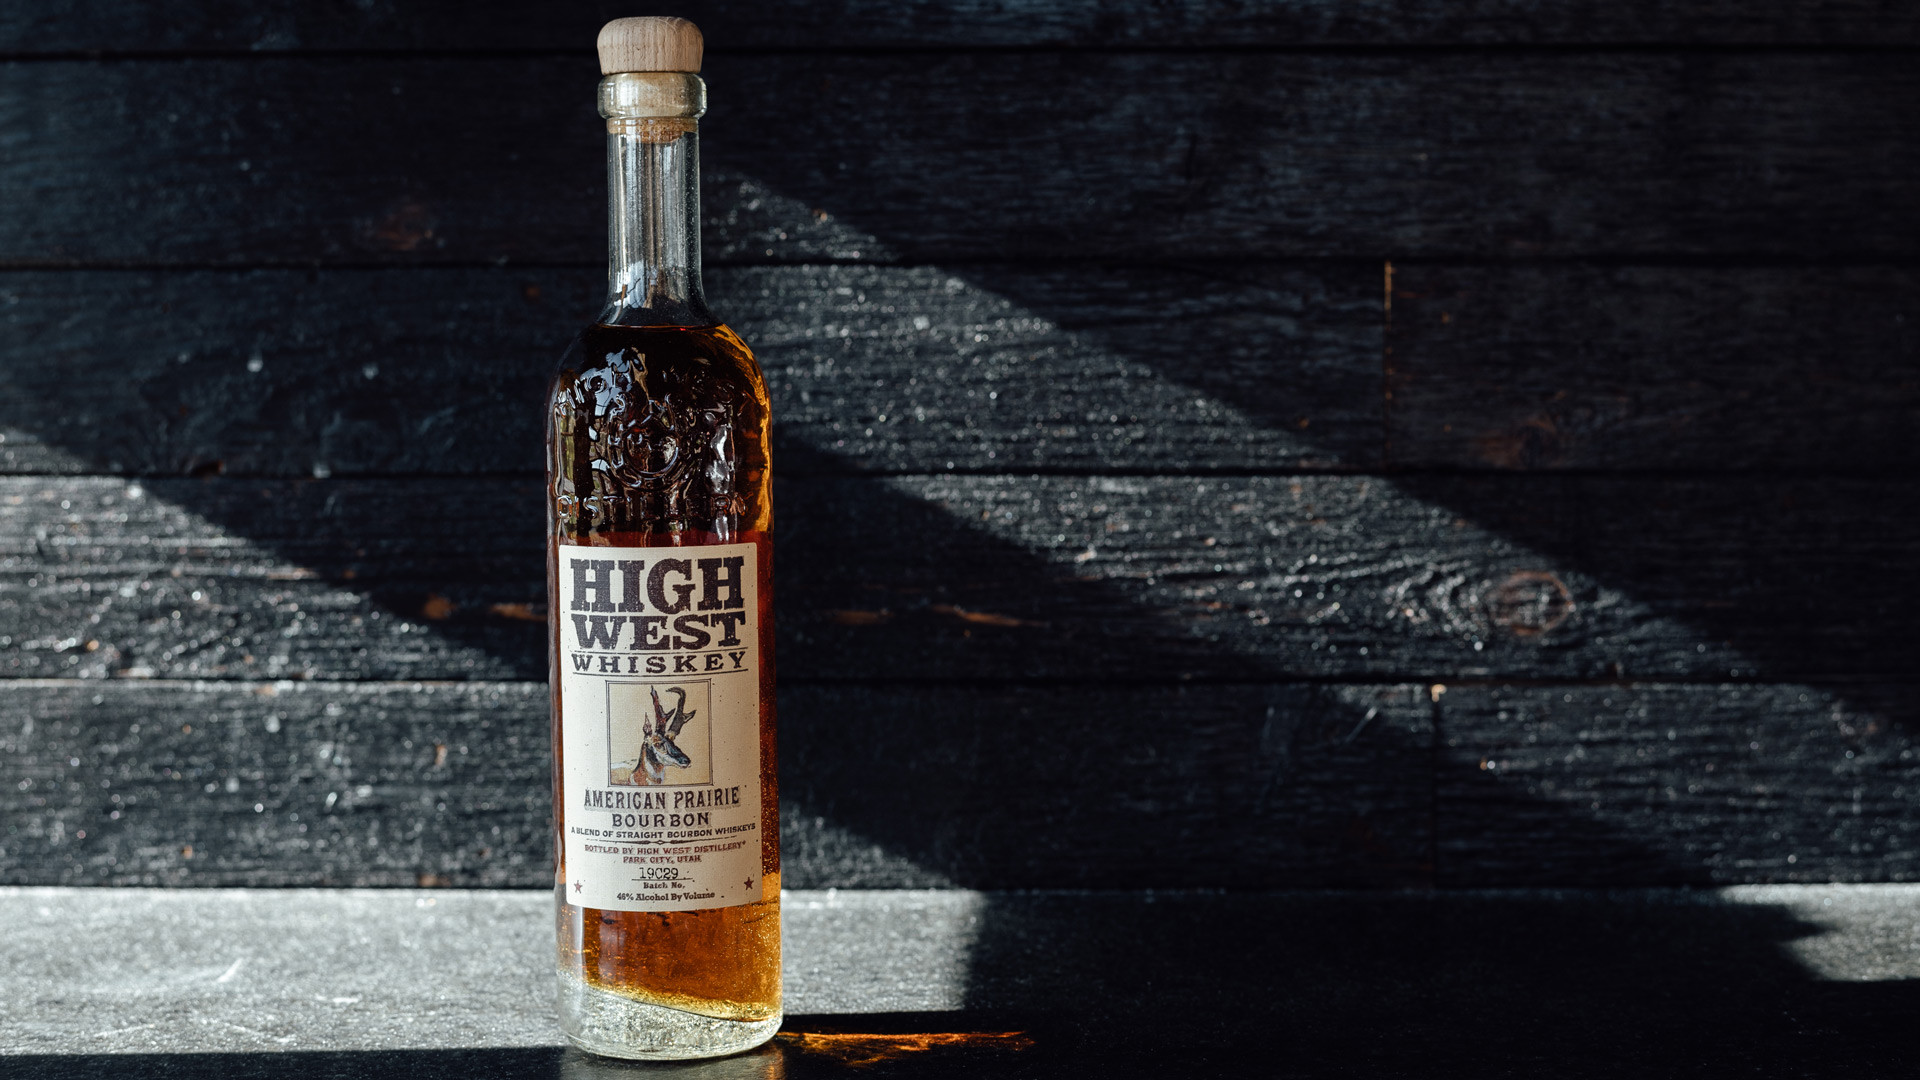 High West American craft whisky is now available at LCBO | A bottle of High West American Prairie Bourbon against a dark wood background